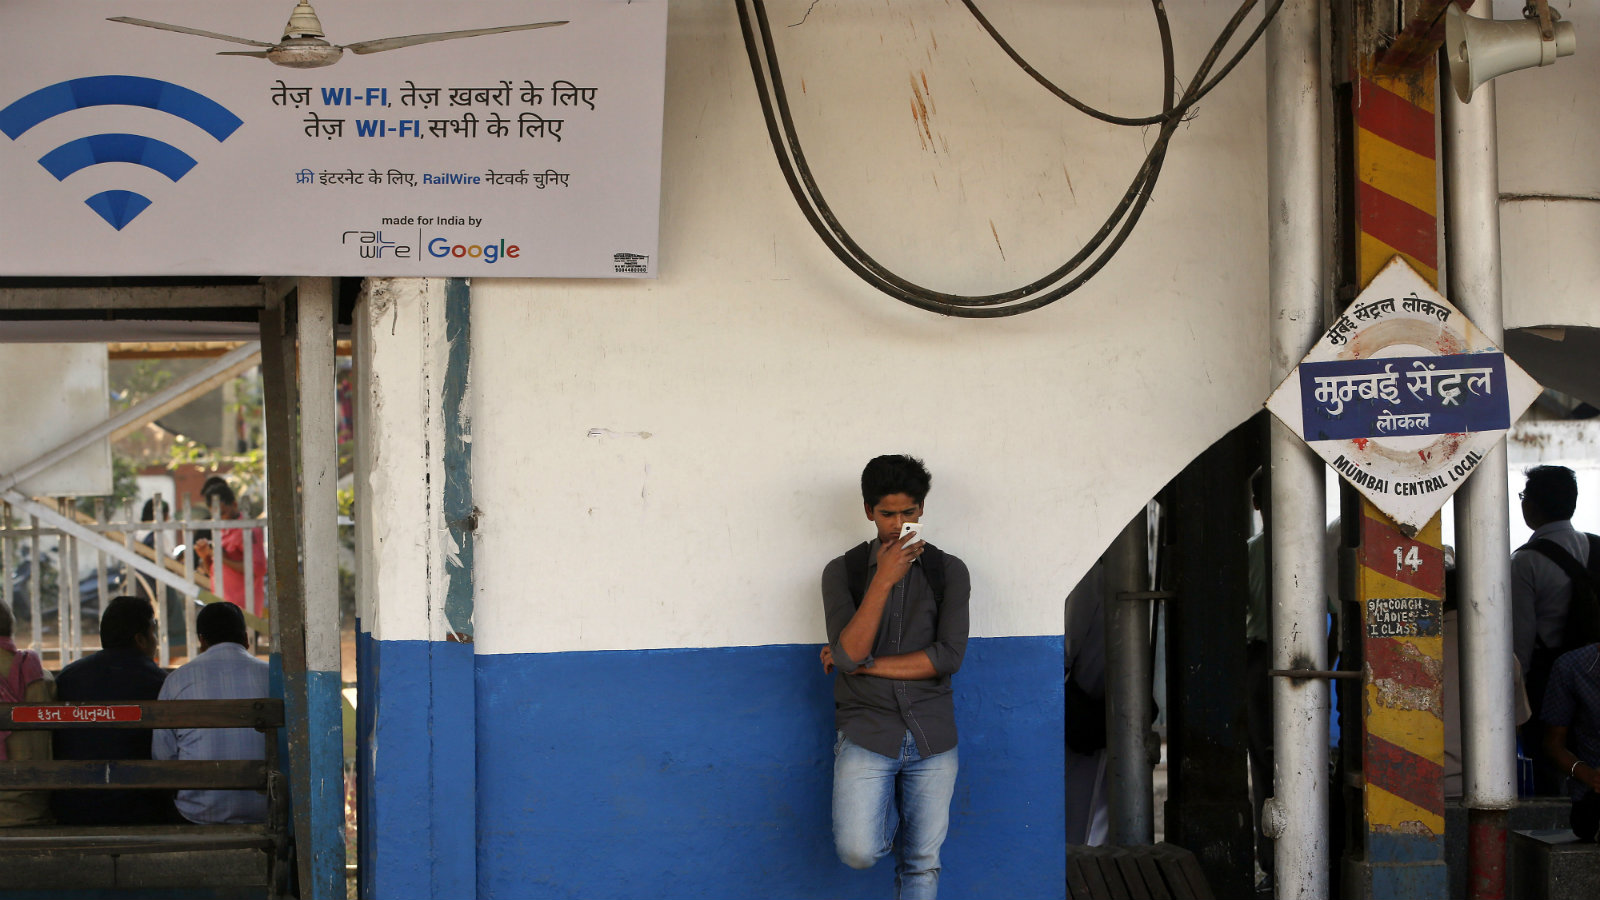 An Indian traveler uses a free WiFi service to browse the net at Mumbai Central Train Station in Mumbai, India, Friday, Jan. 22, 2016. Google Inc. has begun offering free WiFi to Mumbai train passengers in hopes of boosting its role in the Indian market. A poster on the left says 'fast WiFi, for fast news, fast WiFi, for everyone'.